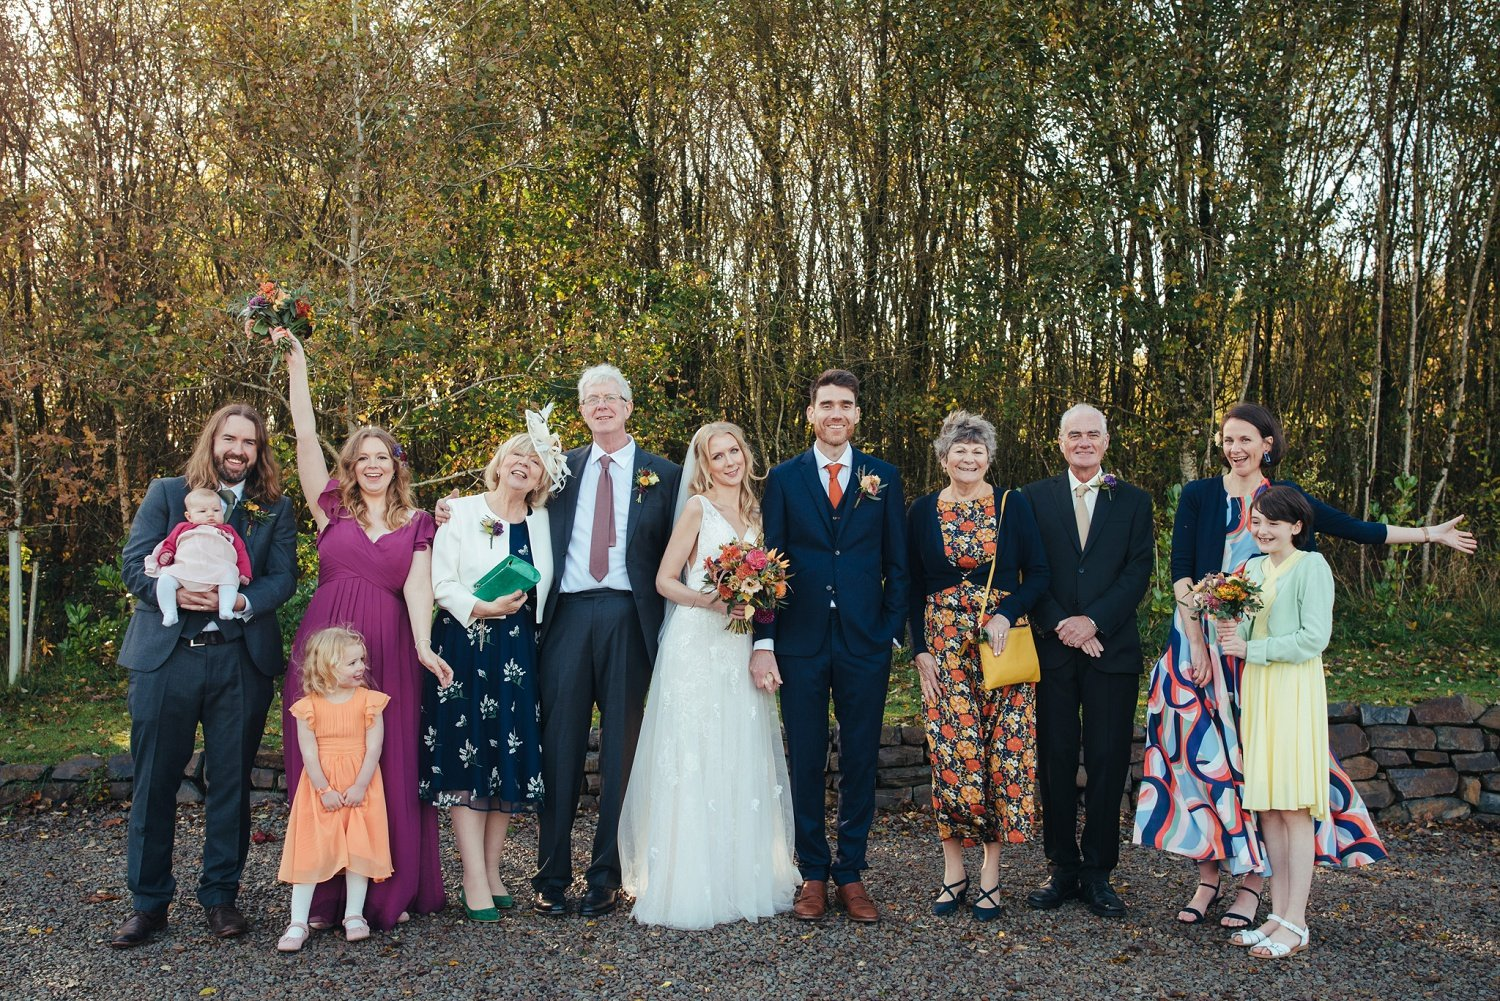 12 guests wedding in 2020 at Tree Top Escape in Devon, UK